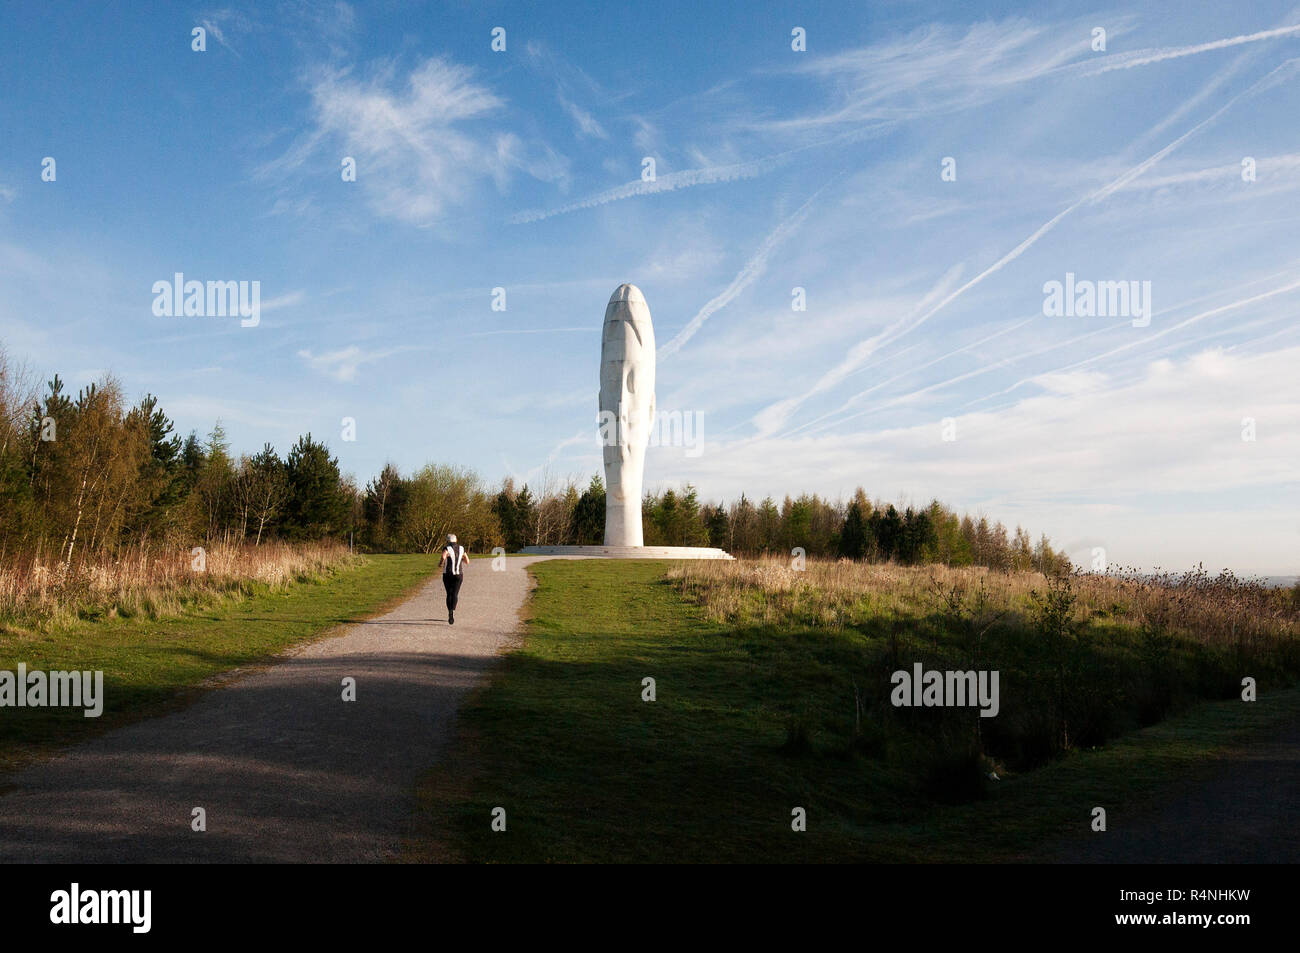 'The Dream' sculpture, St Helens, UK Opened in 2009, the winner of Channel 4's Big Art Project, a 20 metre high 'girl' made of marble by Jaume Plensa. - Stock Image